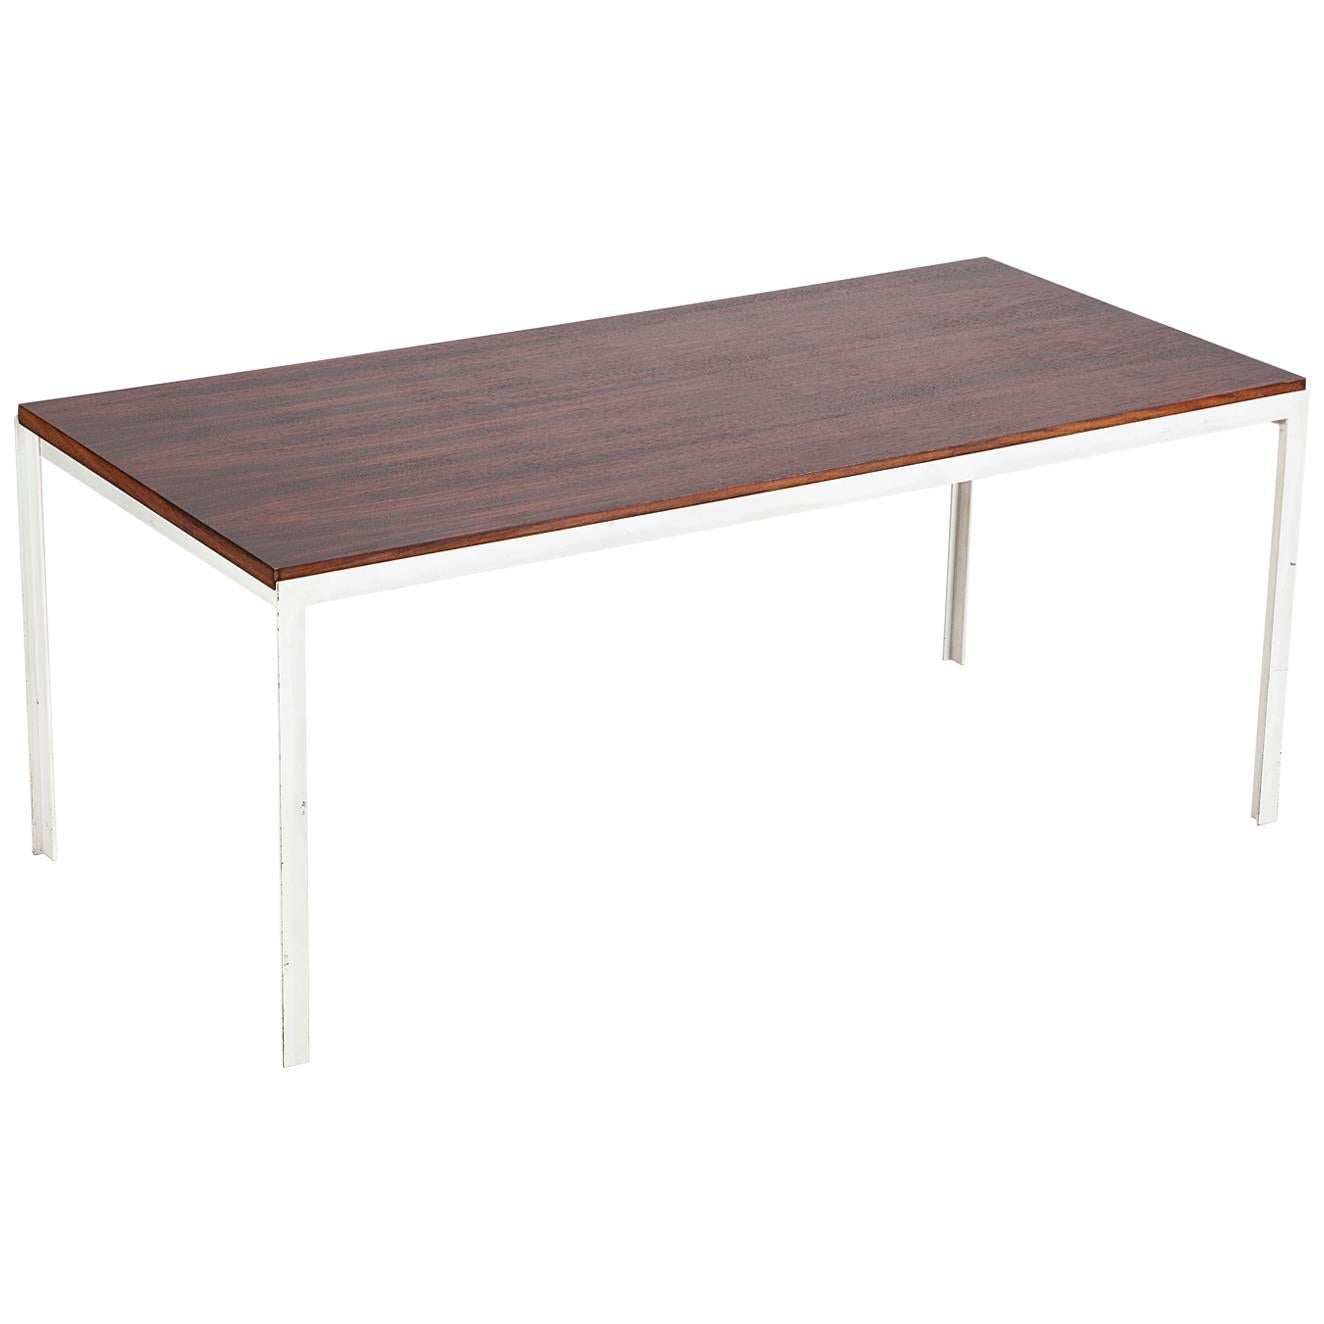 Florence Knoll Coffee Table Rosewood T Angle Iron, 1956 At 1stdibs